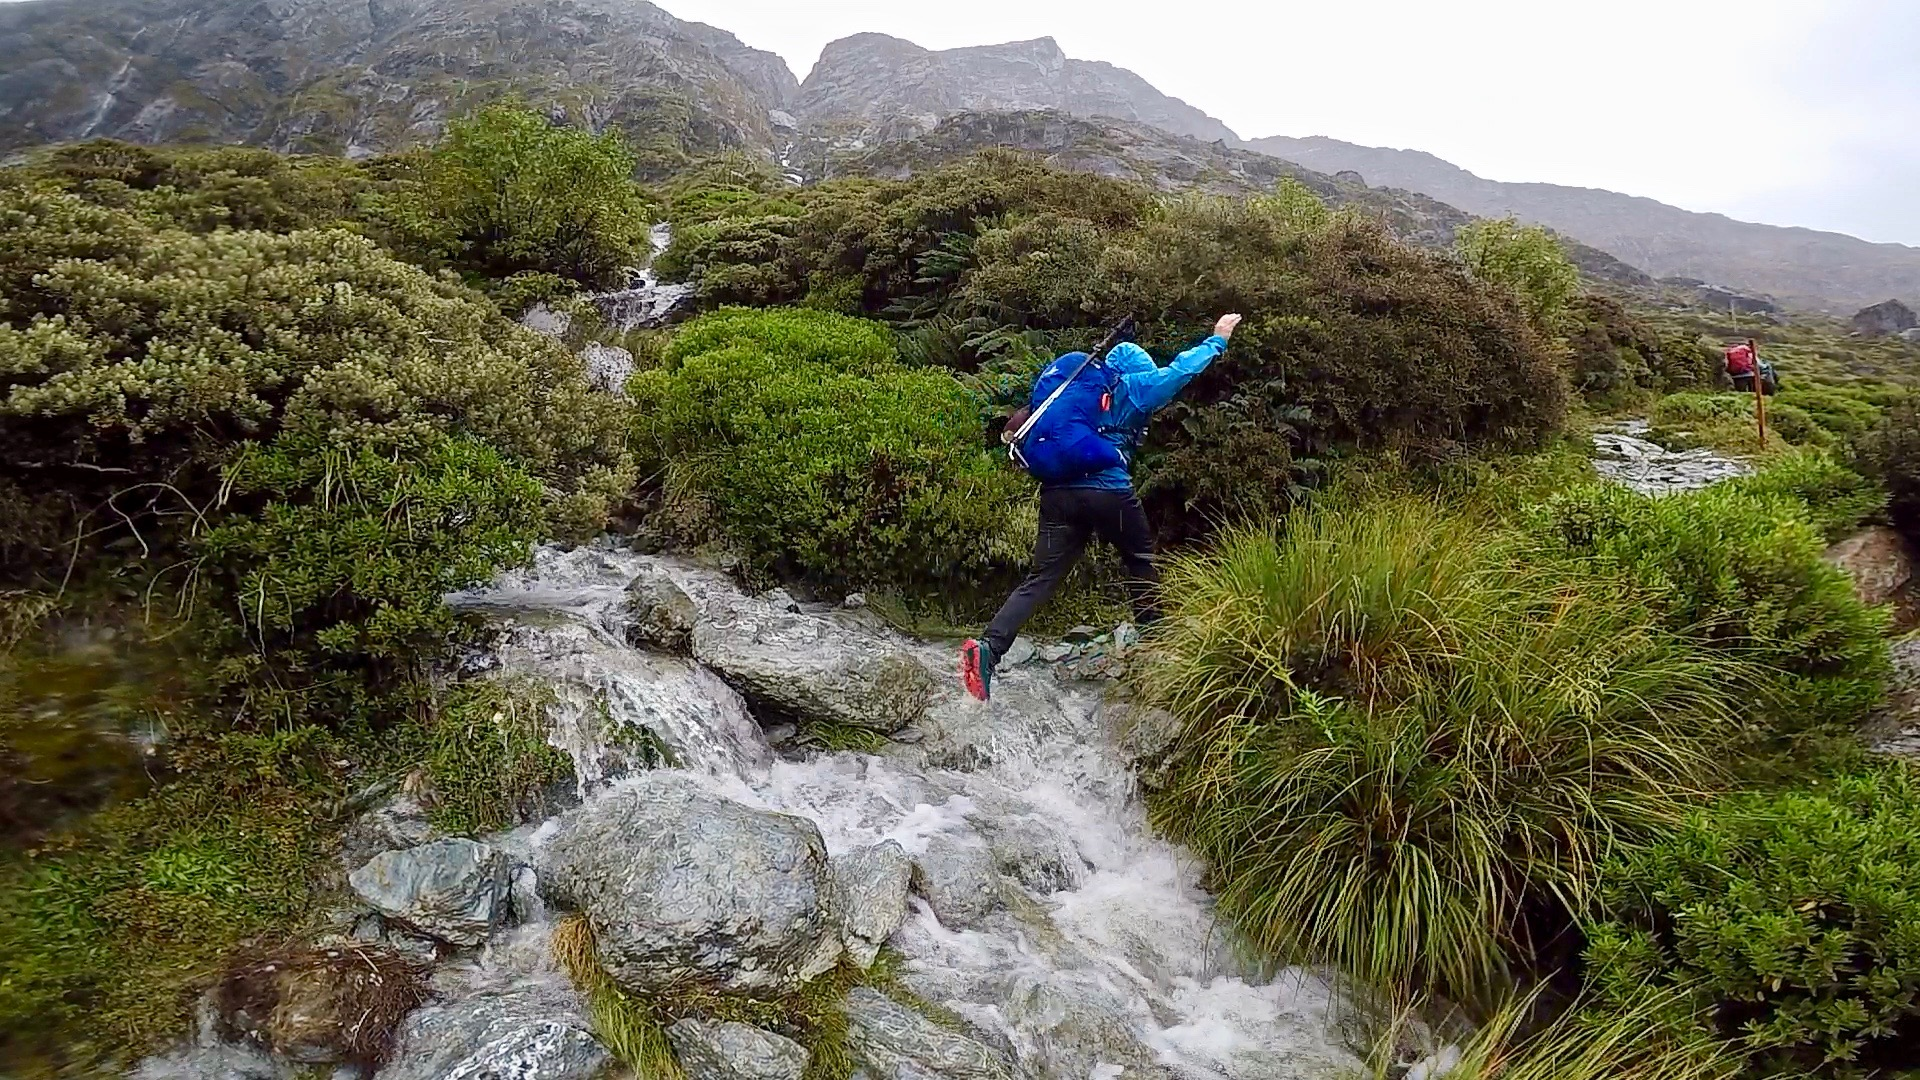 A Week S Itinerary Of Trail Exploring In Nz Queenstown Fiordland National Park All The Gear Nae Idea